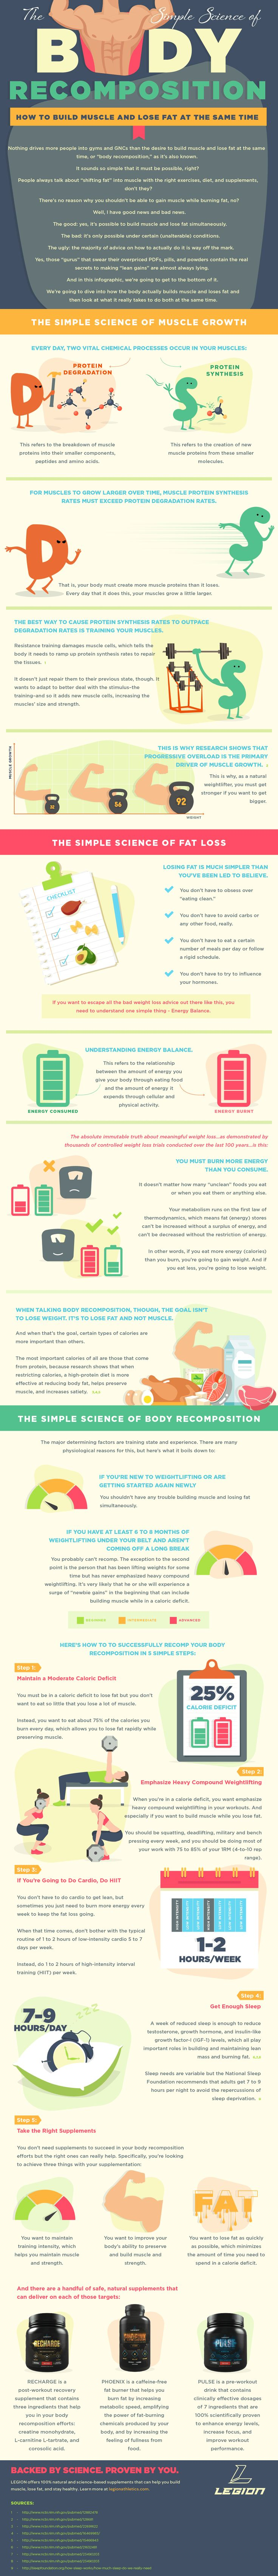 "https://legionathletics.com/body-recomposition-infographic/  share text;  Body recomposition, as people ""in the know"" like to call it, sounds so simple that it must be possible, right?  Well, it is, but only under a few very specific conditions.  In this infographic, we're going to dive into how the body actually builds muscle and loses fat and then look at what it takes to do both at the same time.  Check this out to learn more."